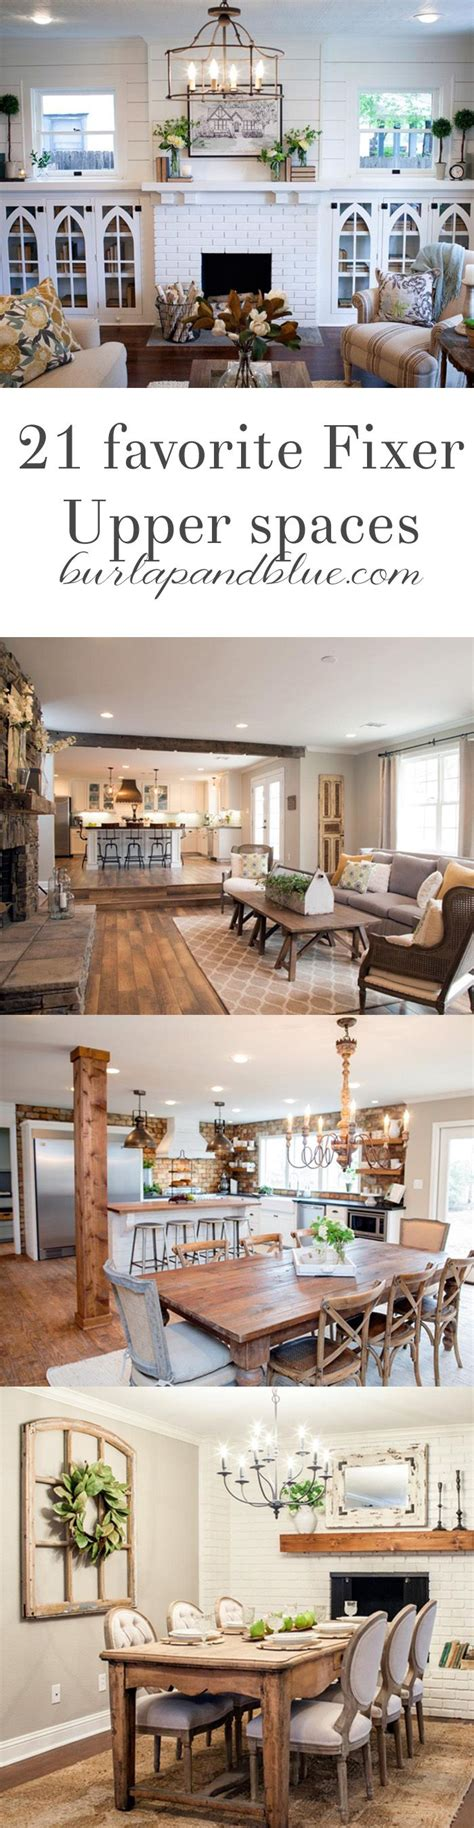 fixer upper magnolia book 304 best images about fixer upper style on pinterest